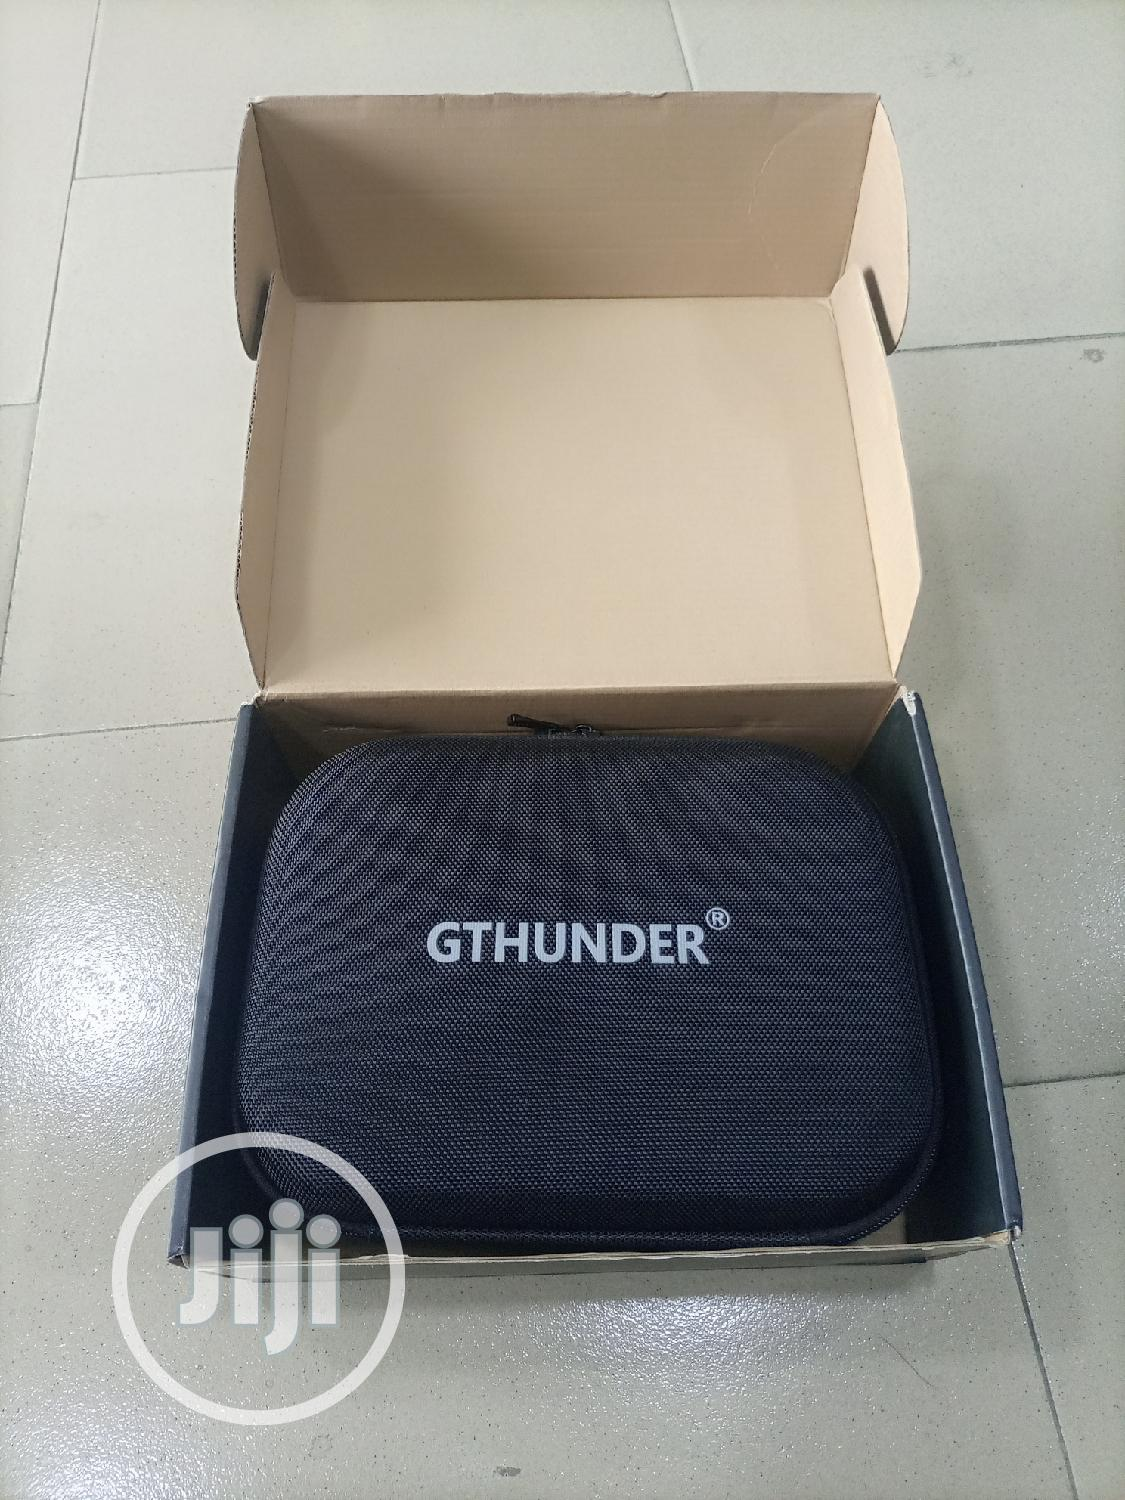 Gthunder Digital Night Vision Binoculars | Camping Gear for sale in Port-Harcourt, Rivers State, Nigeria